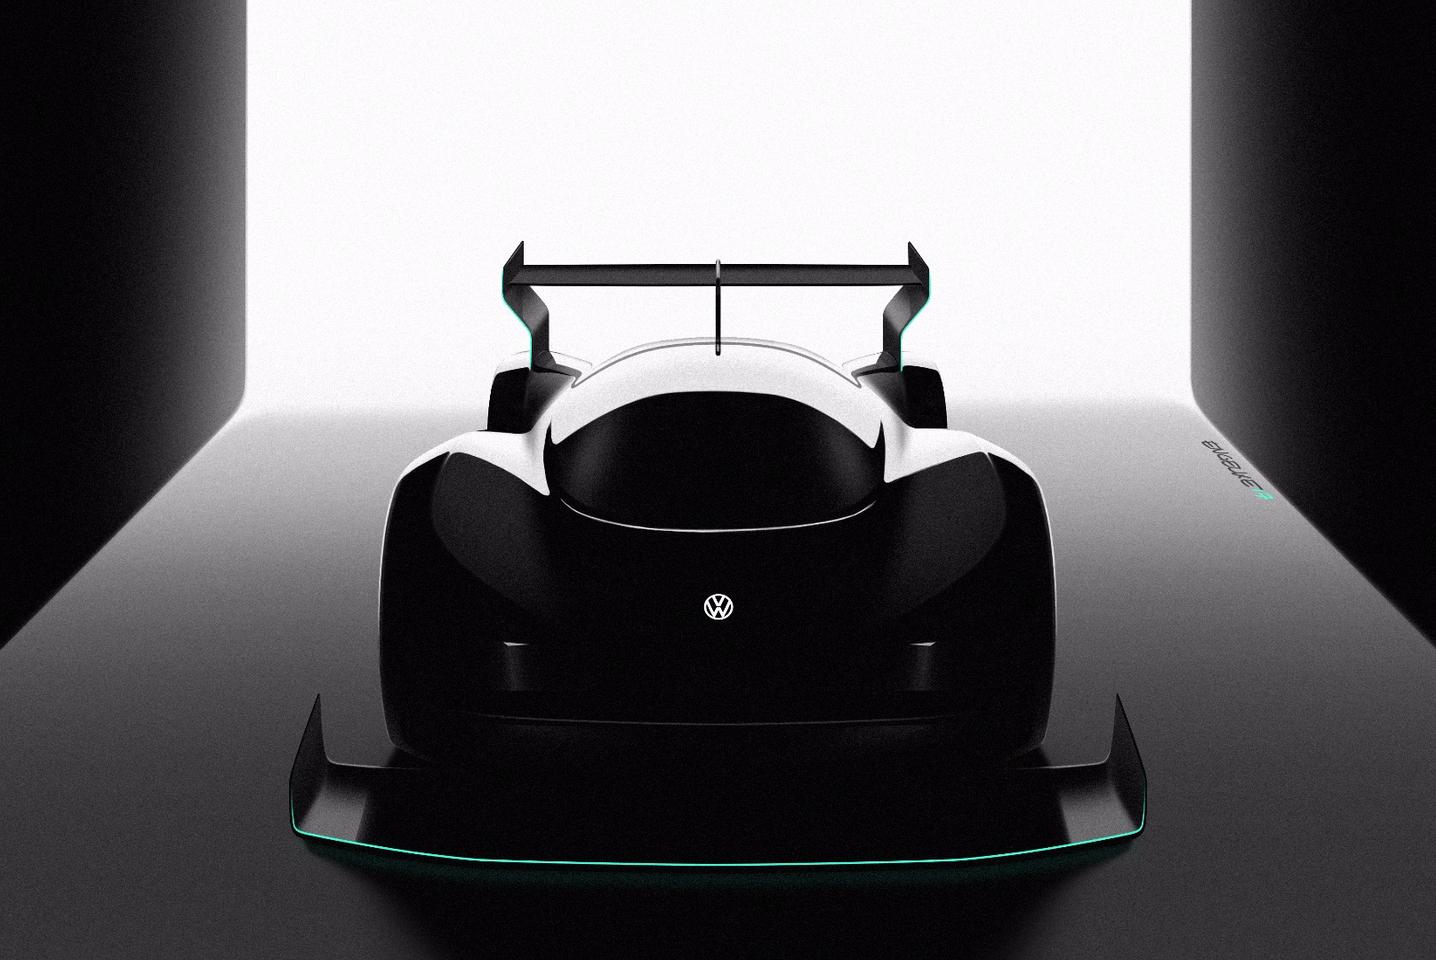 Volkswagen hasn't revealed a whole lot about its new all-electric racingprototype